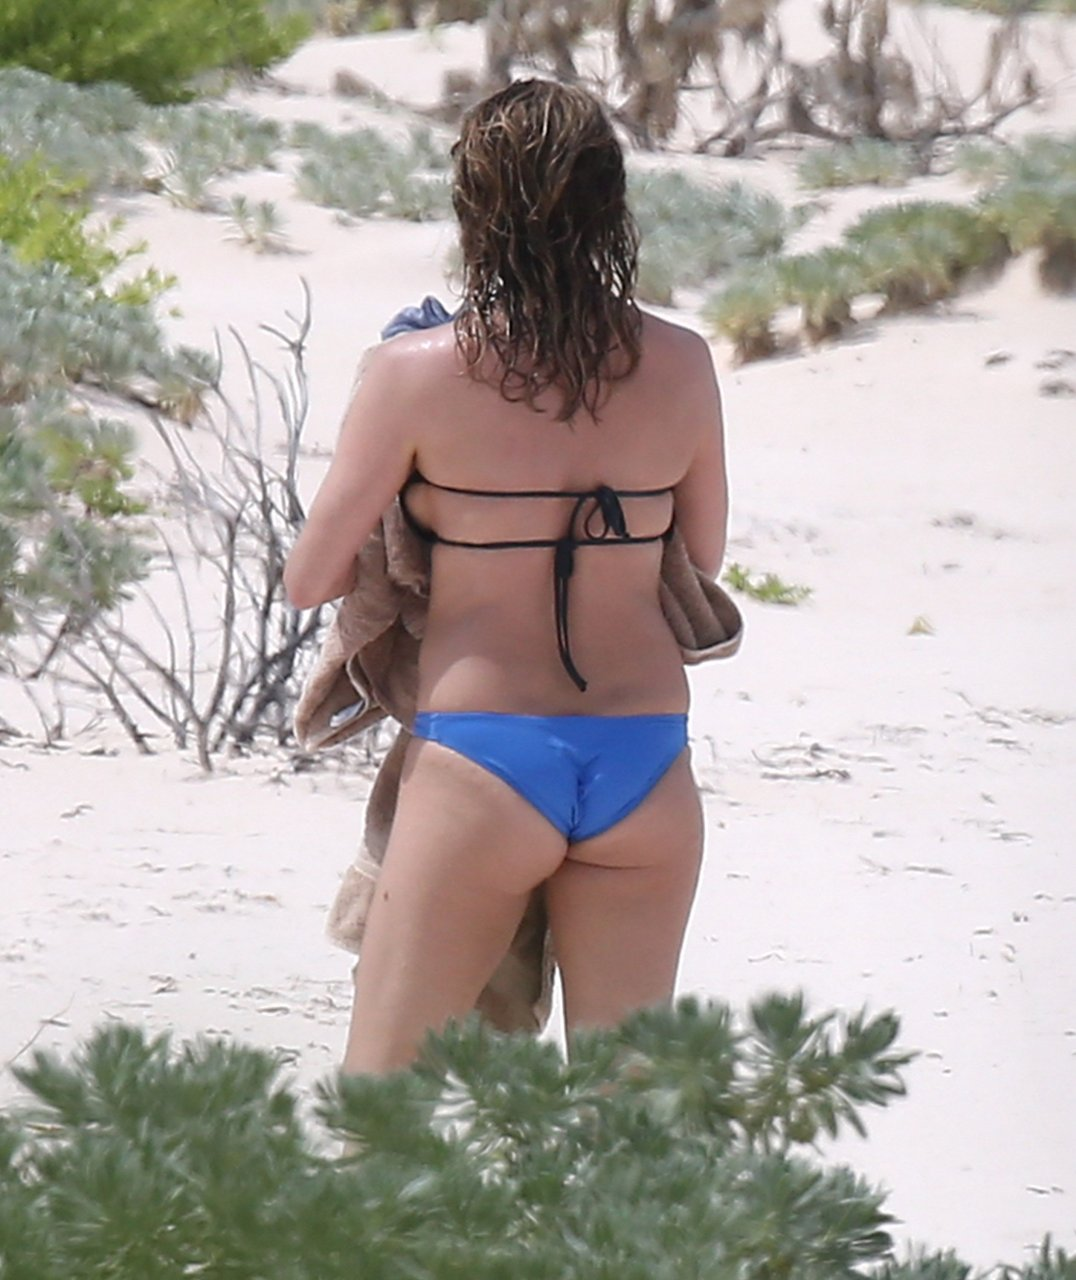 aniston bikini jennifer Hot